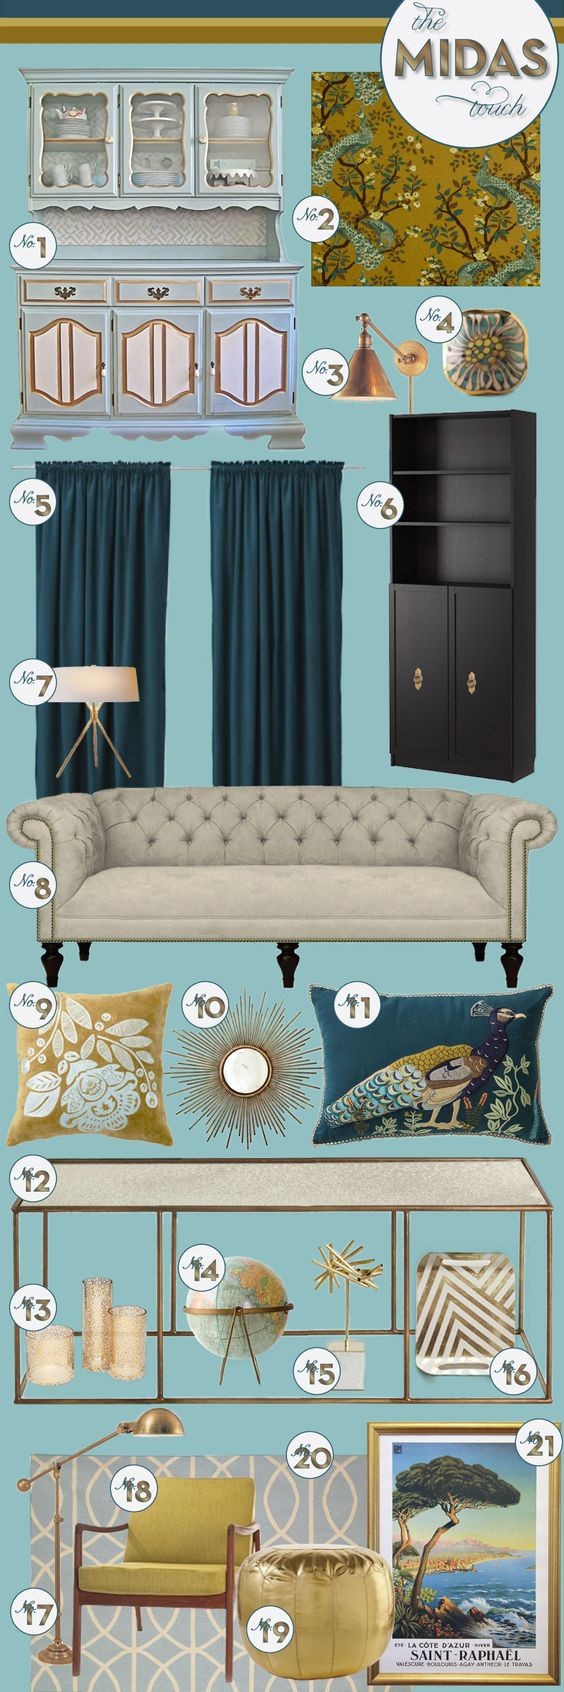 The Midas Touch: Interior Design, Dining Room, Console, Living Room, Guest Room Craft, Gorgeous Interiors, Decoration Color